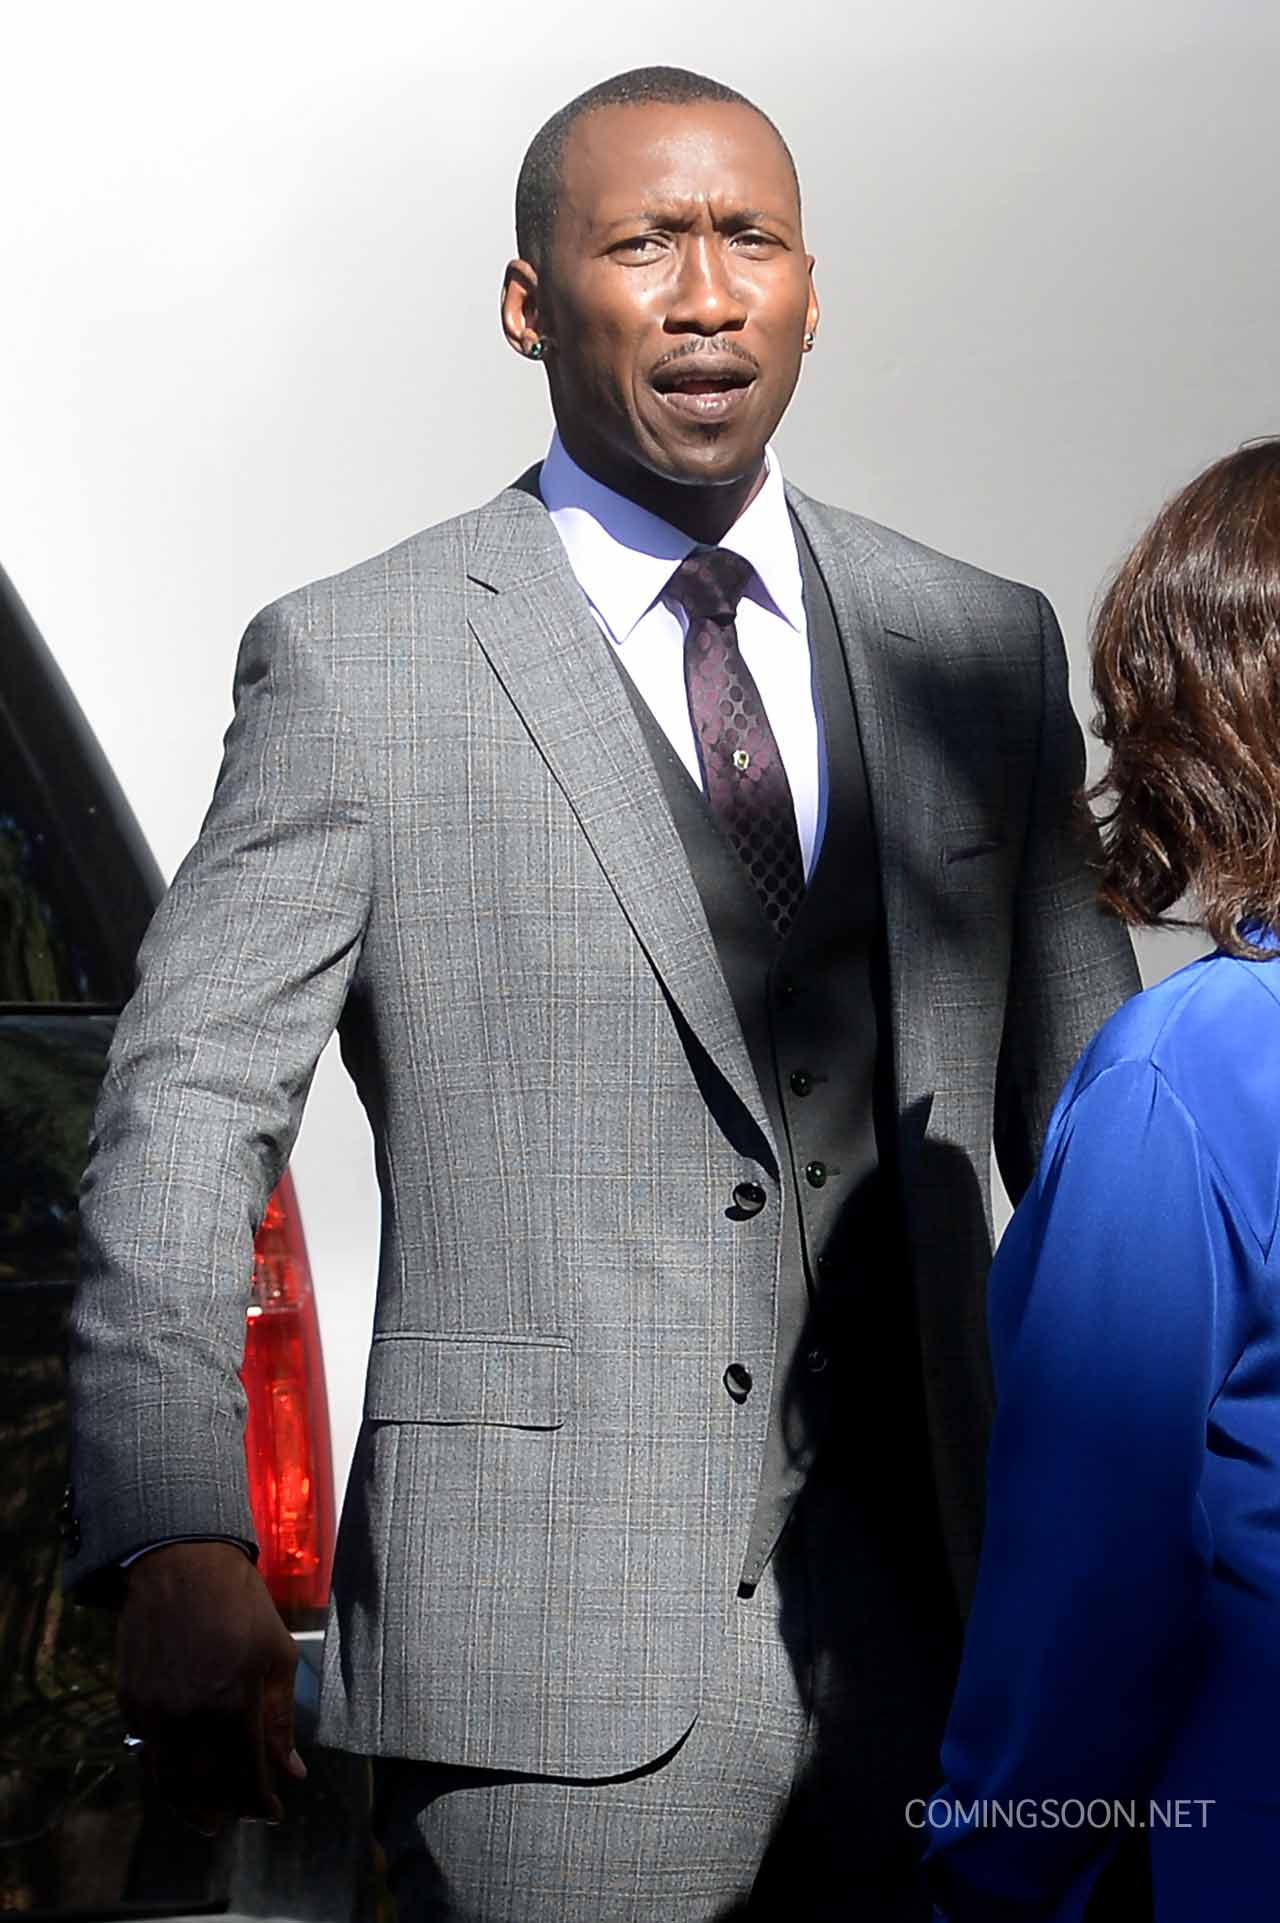 51850665 Stars are spotted on the set of the upcoming Netflix TV series 'Luke Cage' filming in New York City, New York on September 15, 2015. Stars are spotted on the set of the upcoming Netflix TV series 'Luke Cage' filming in New York City, New York on September 15, 2015. Pictured: Mahershala Ali FameFlynet, Inc - Beverly Hills, CA, USA - +1 (818) 307-4813